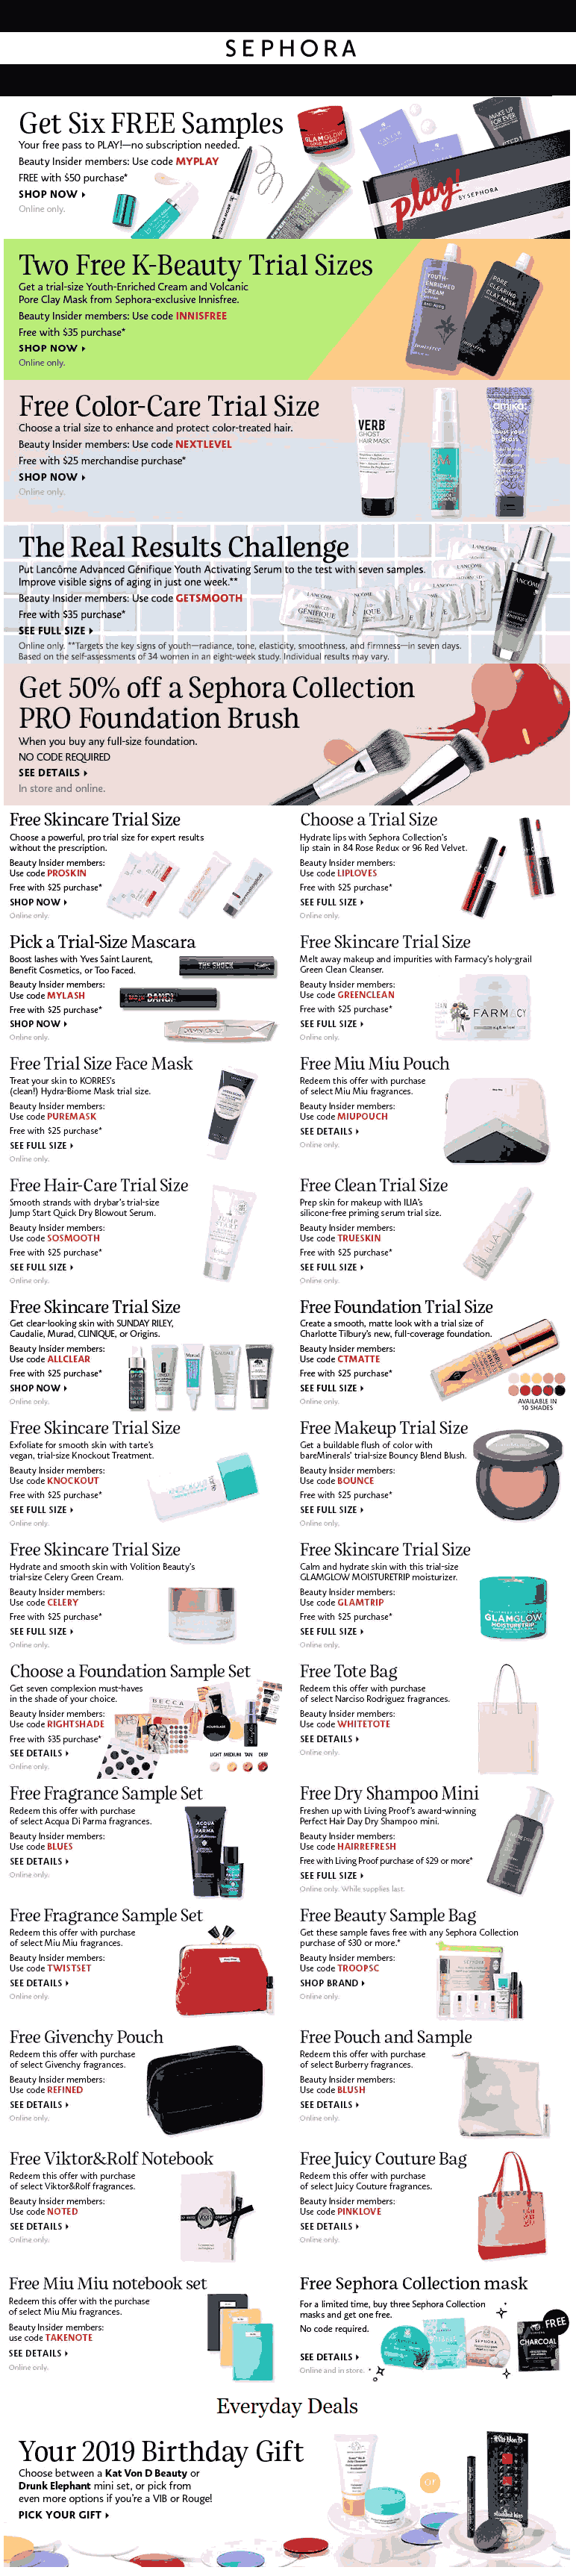 Sephora Coupon October 2019 Various free items with $25 spent online at Sephora